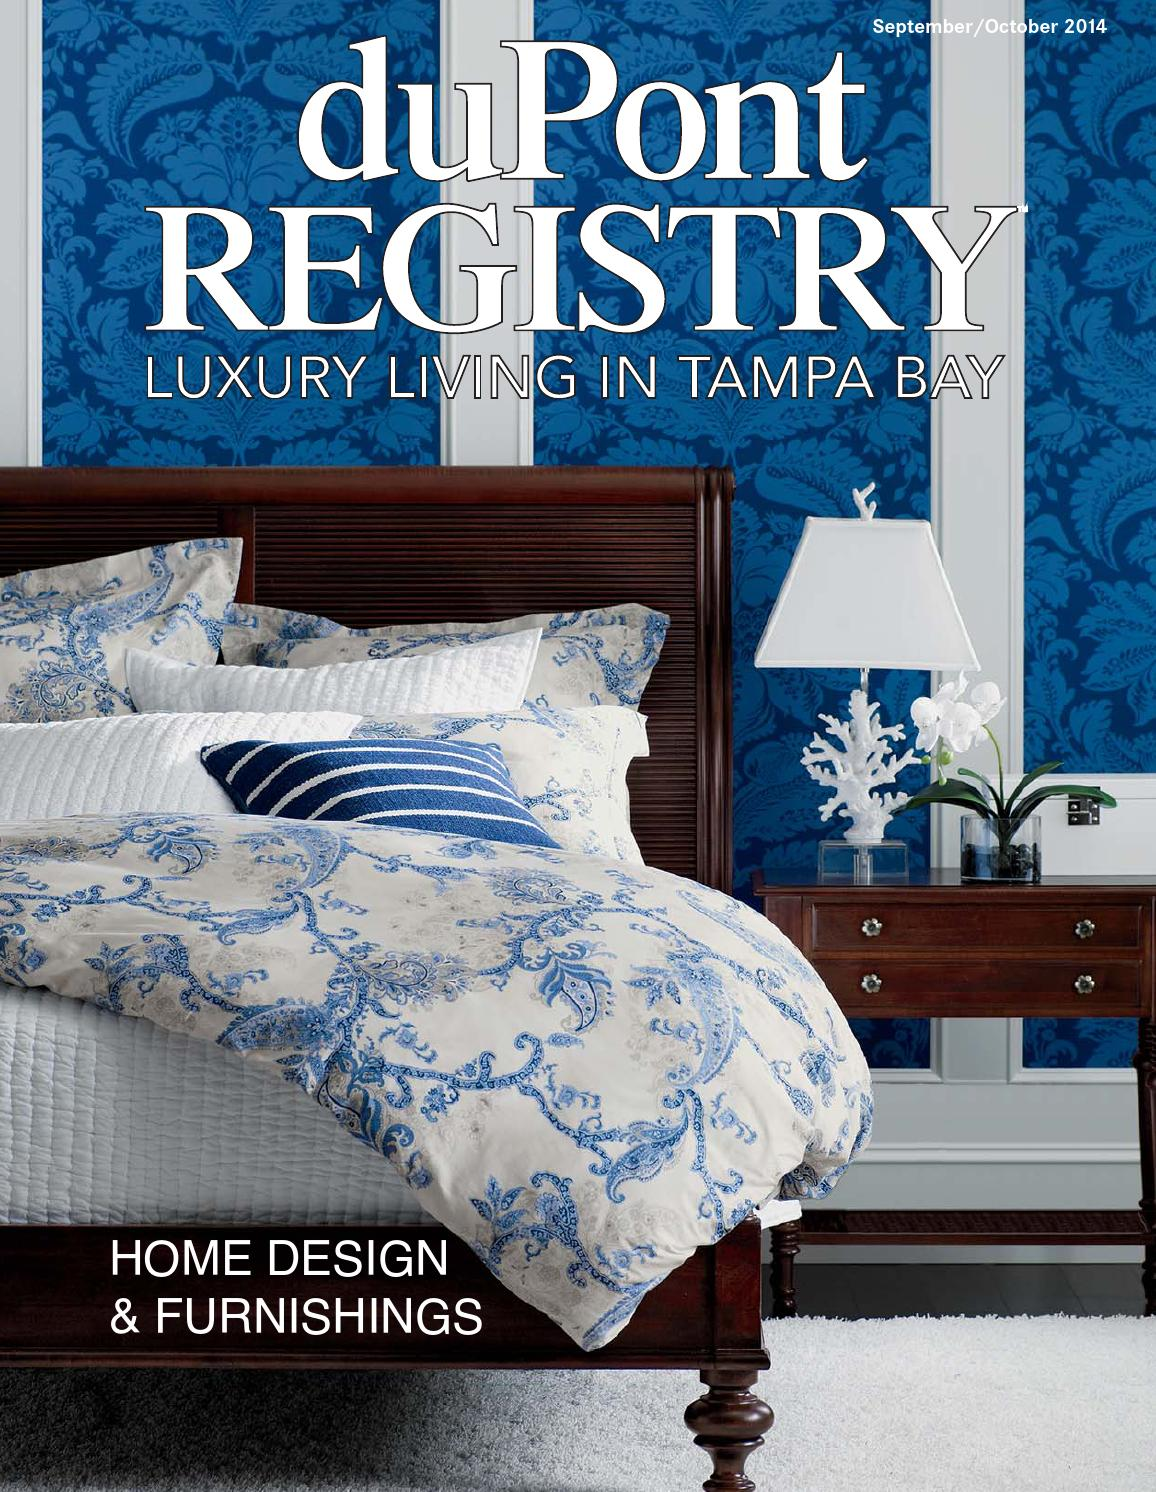 7e69f9bf6454b2 duPontREGISTRY Tampa Bay September/October 2014 by duPont REGISTRY - issuu